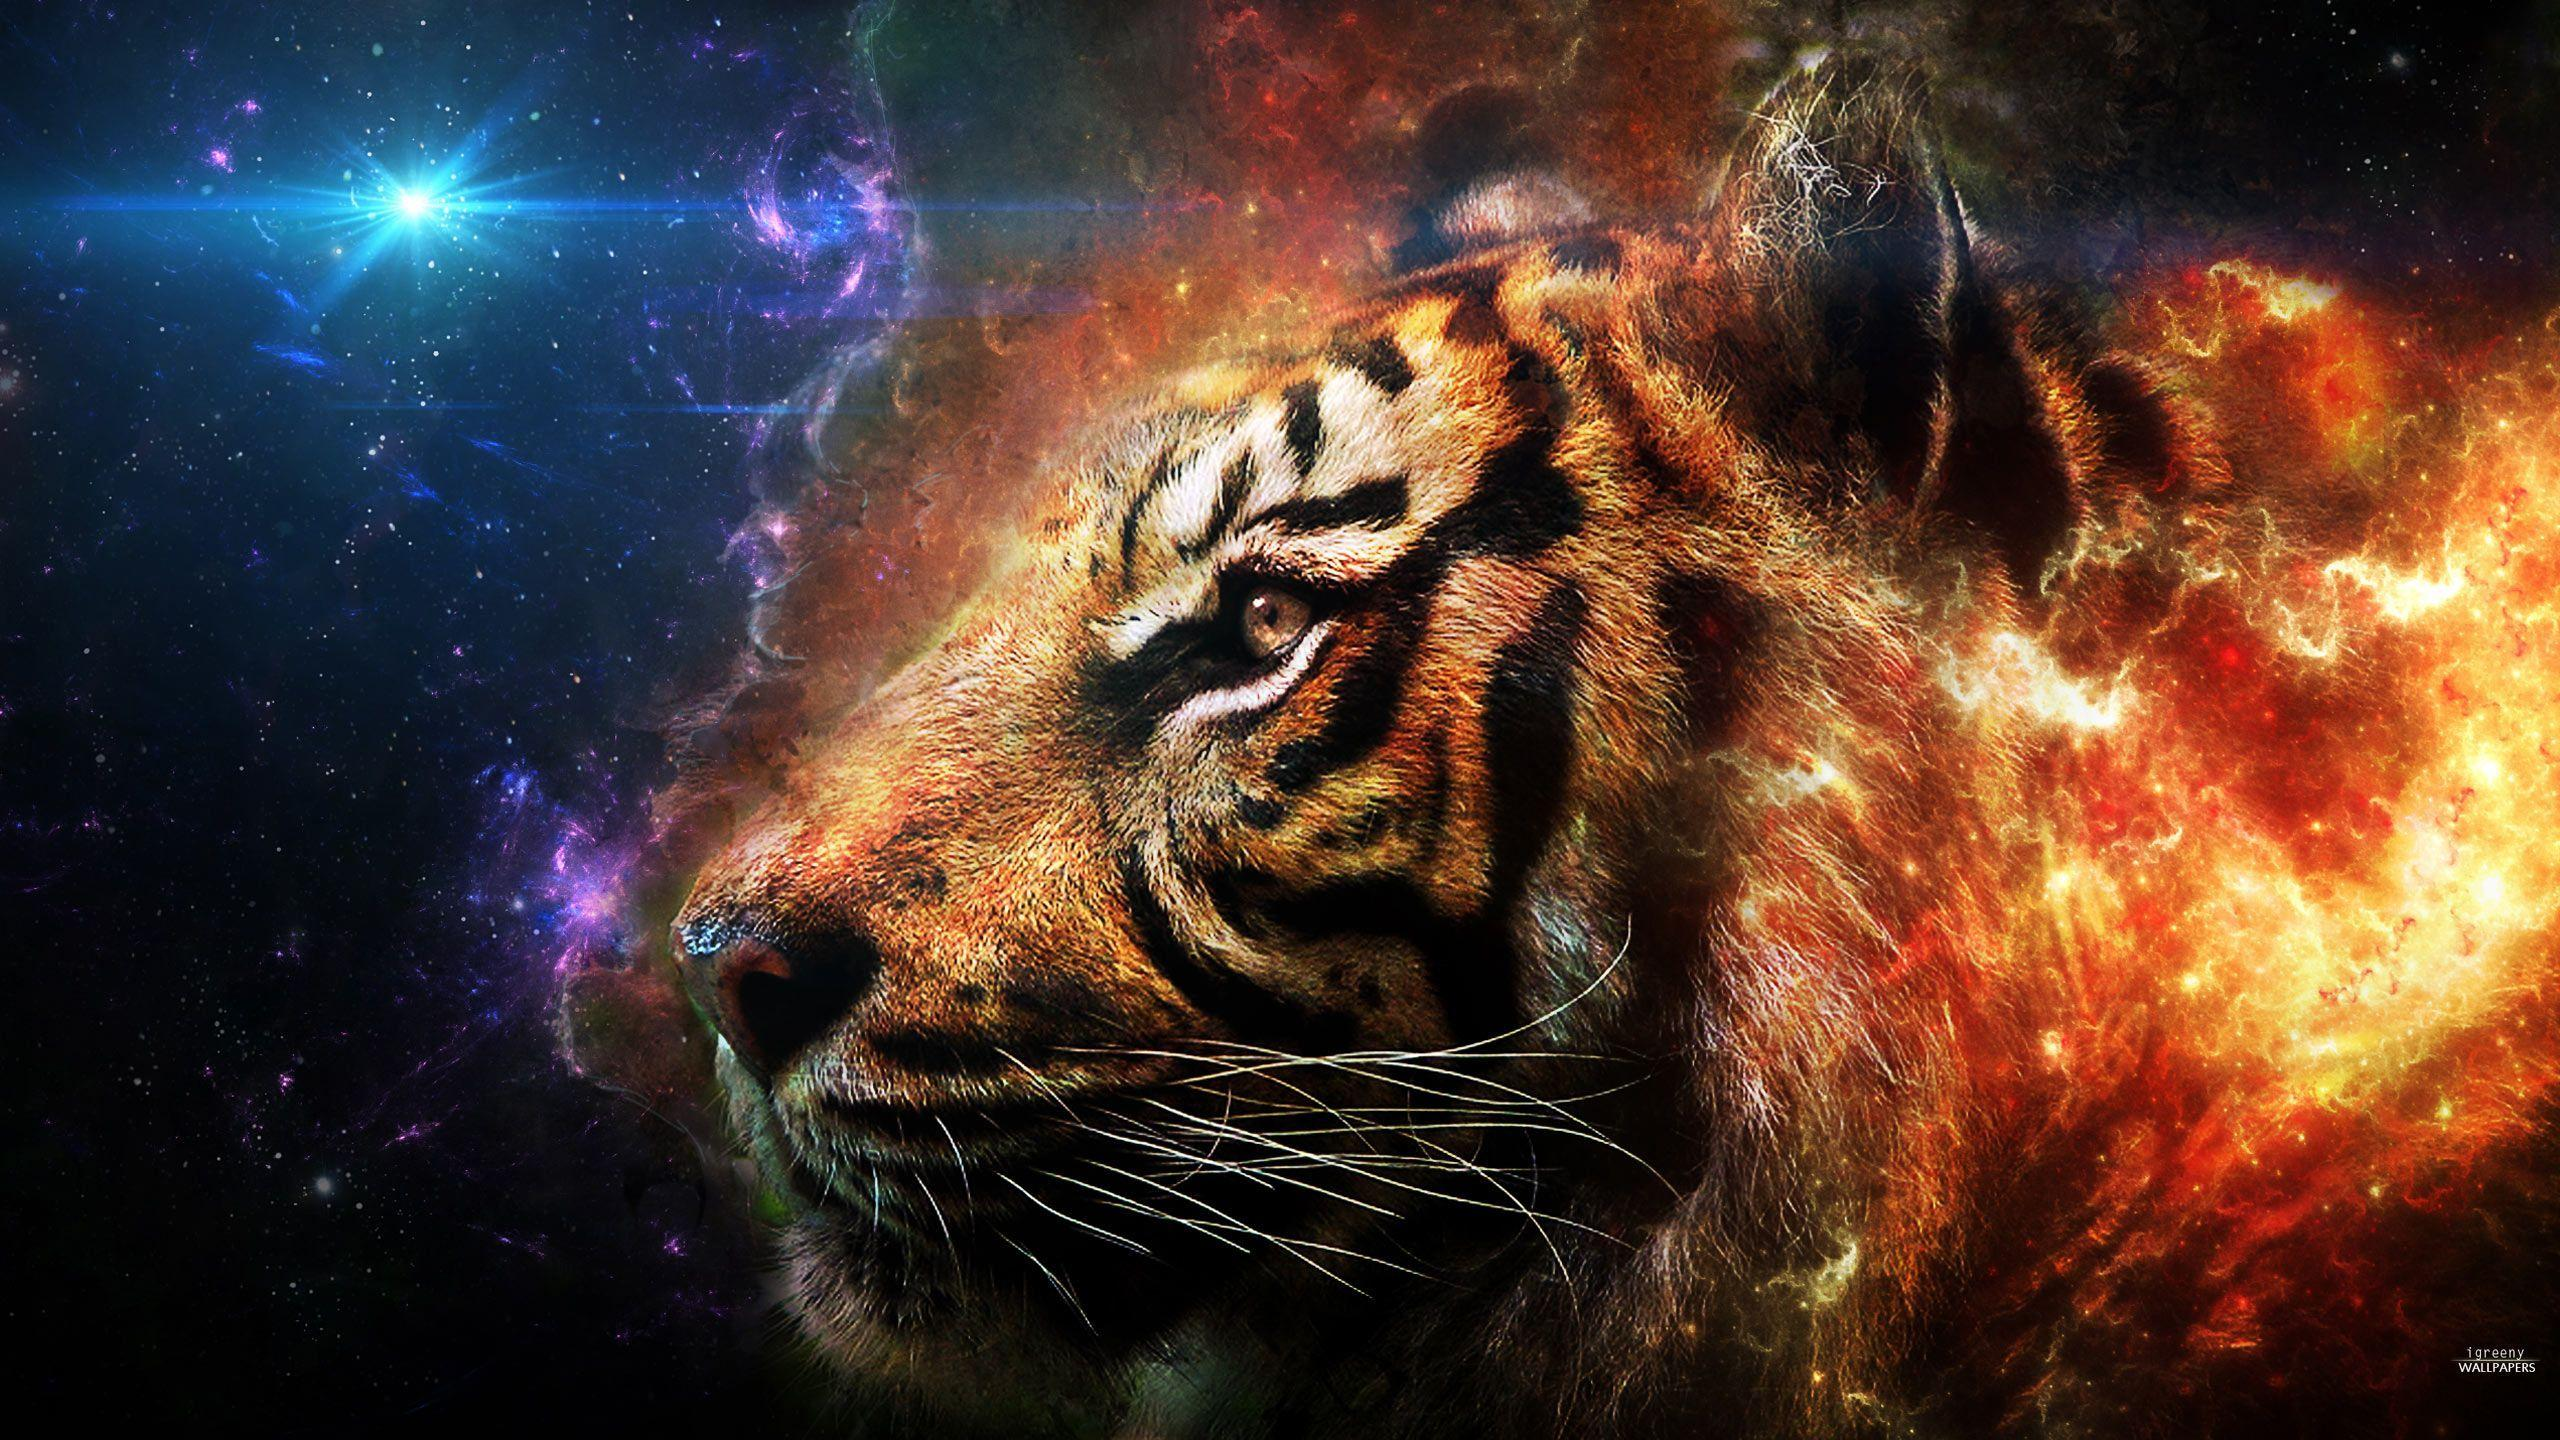 Free Wallpapers - Tiger Head 2560x1440 wallpaper